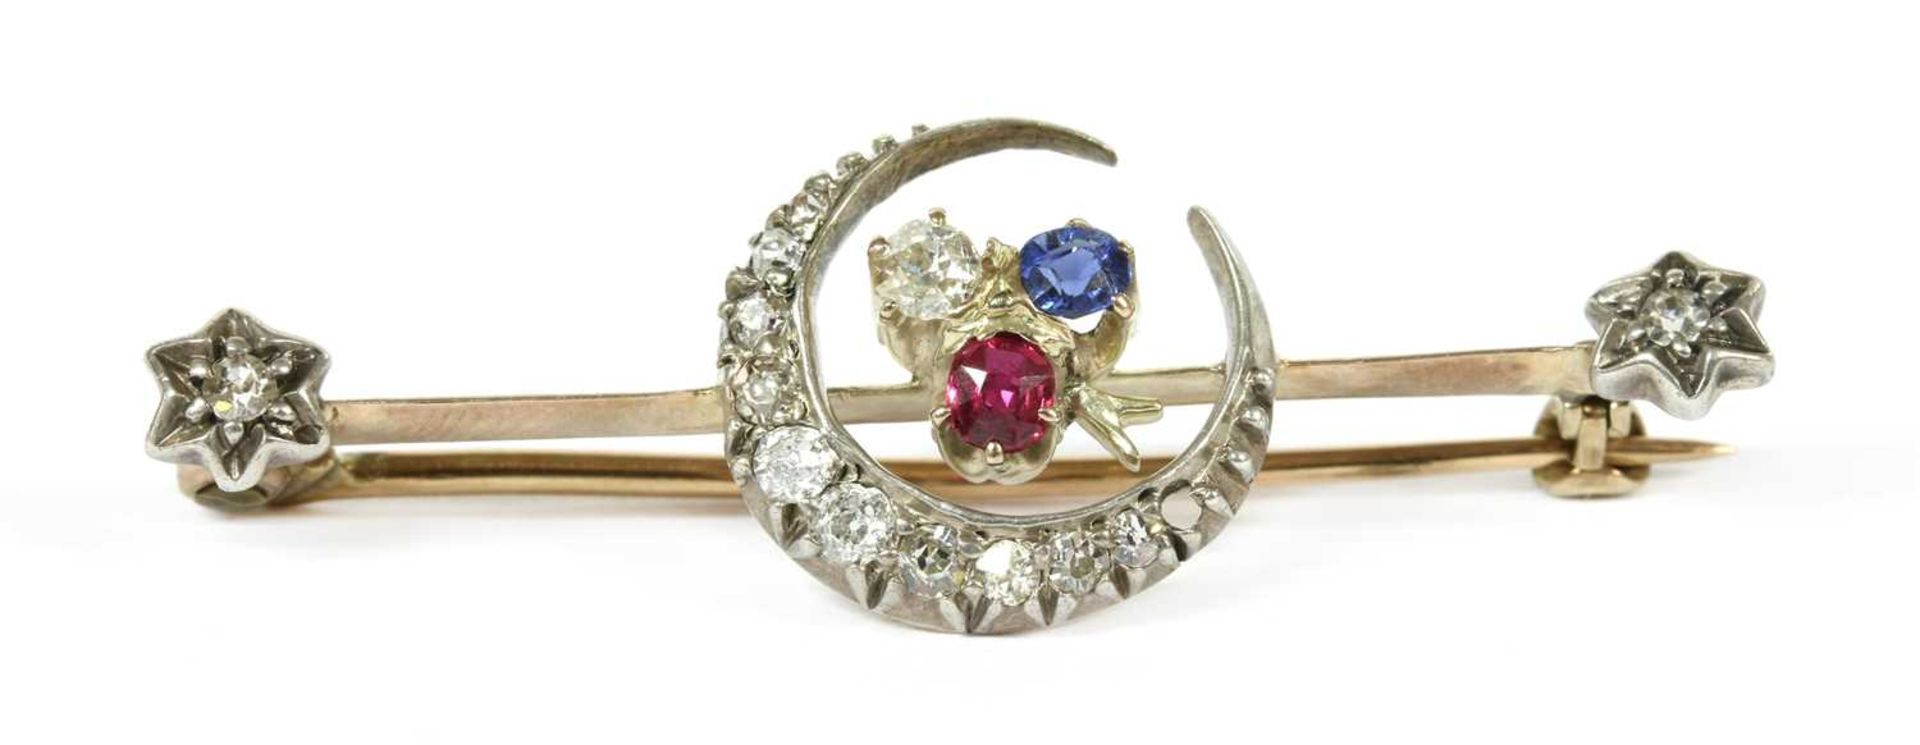 A gold and silver, diamond, ruby and sapphire crescent bar brooch,